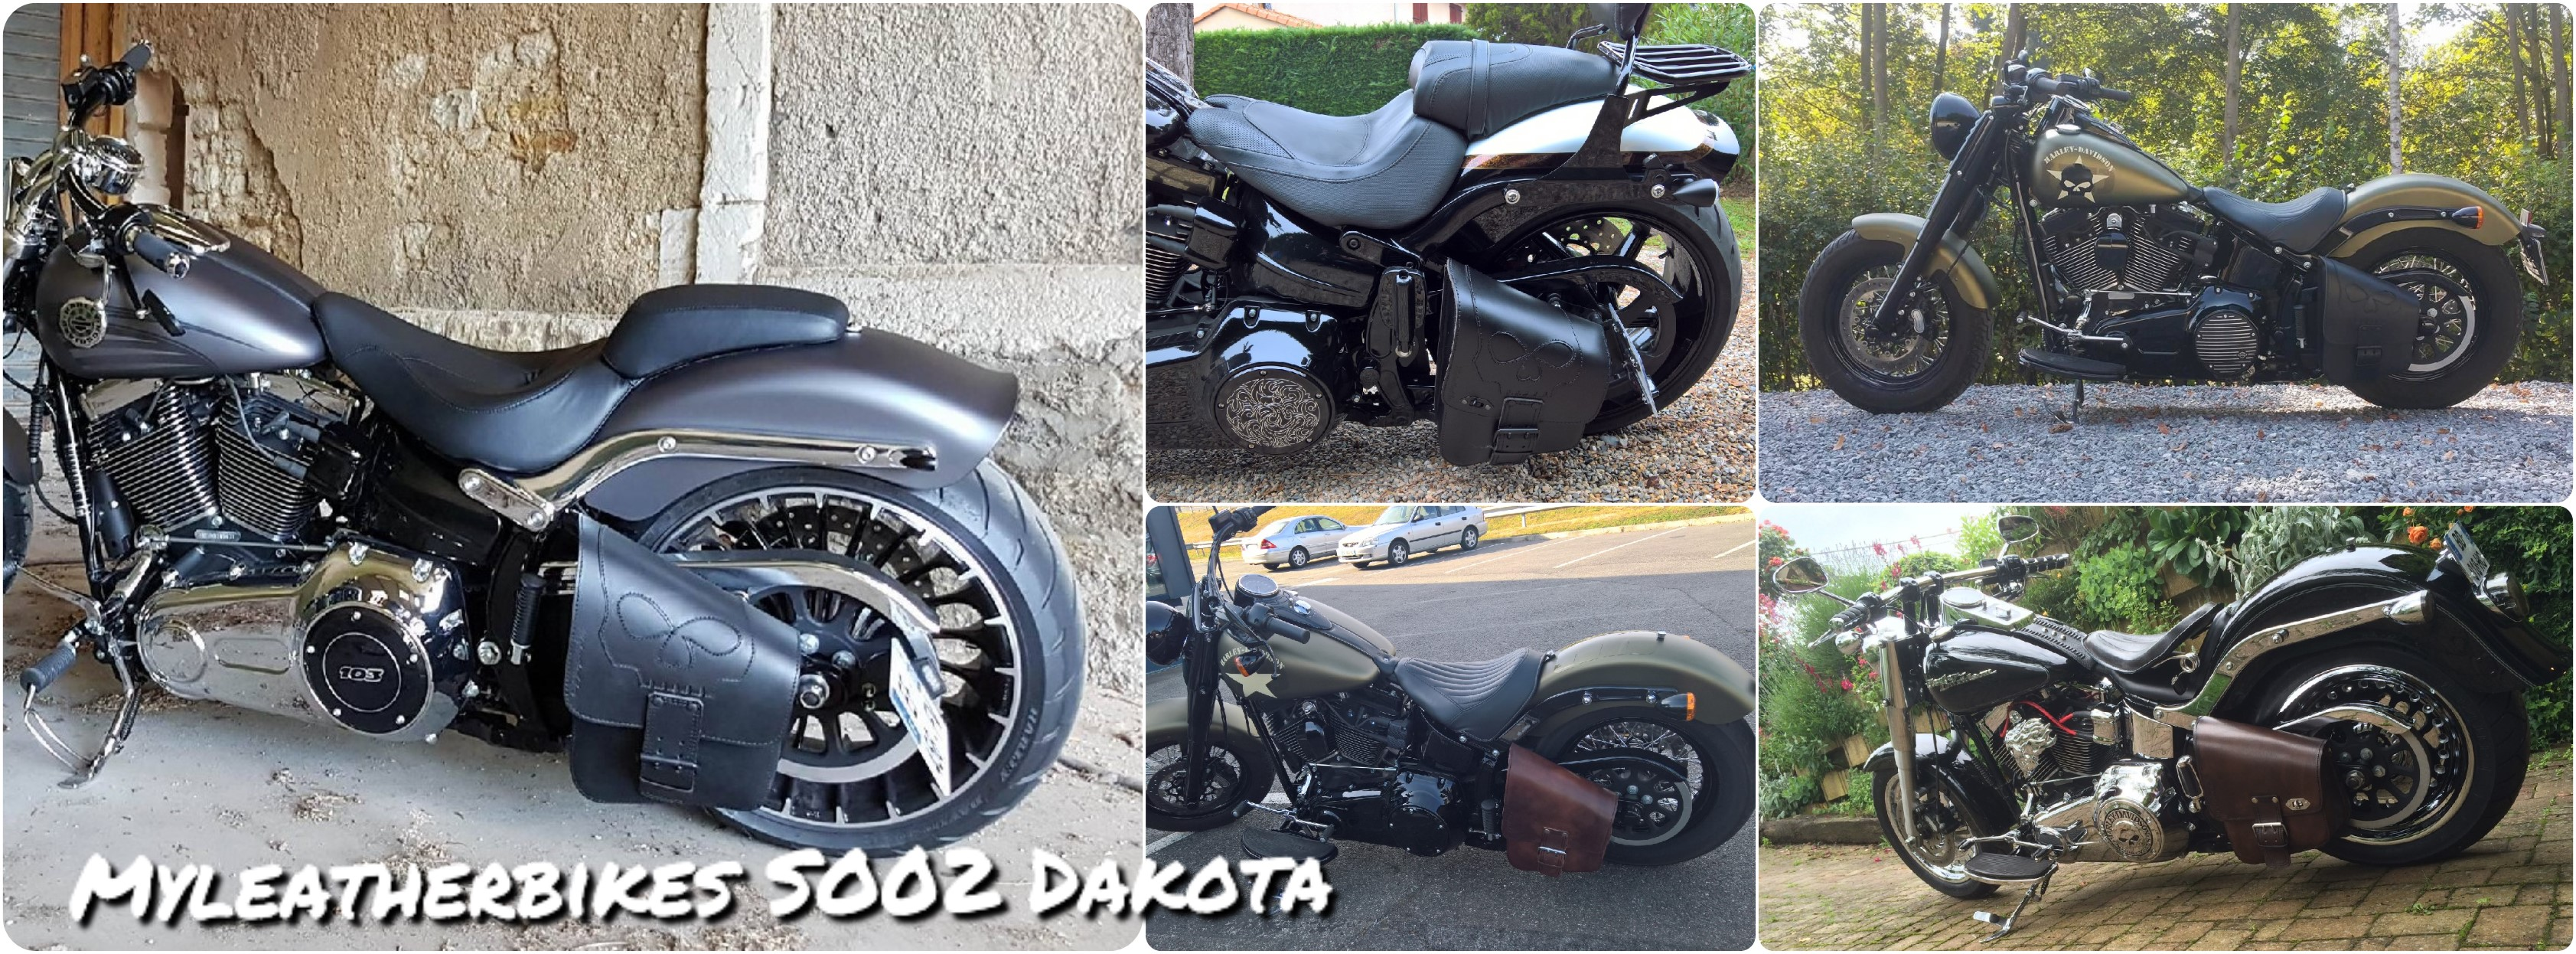 sacoche softail so02 Dakota